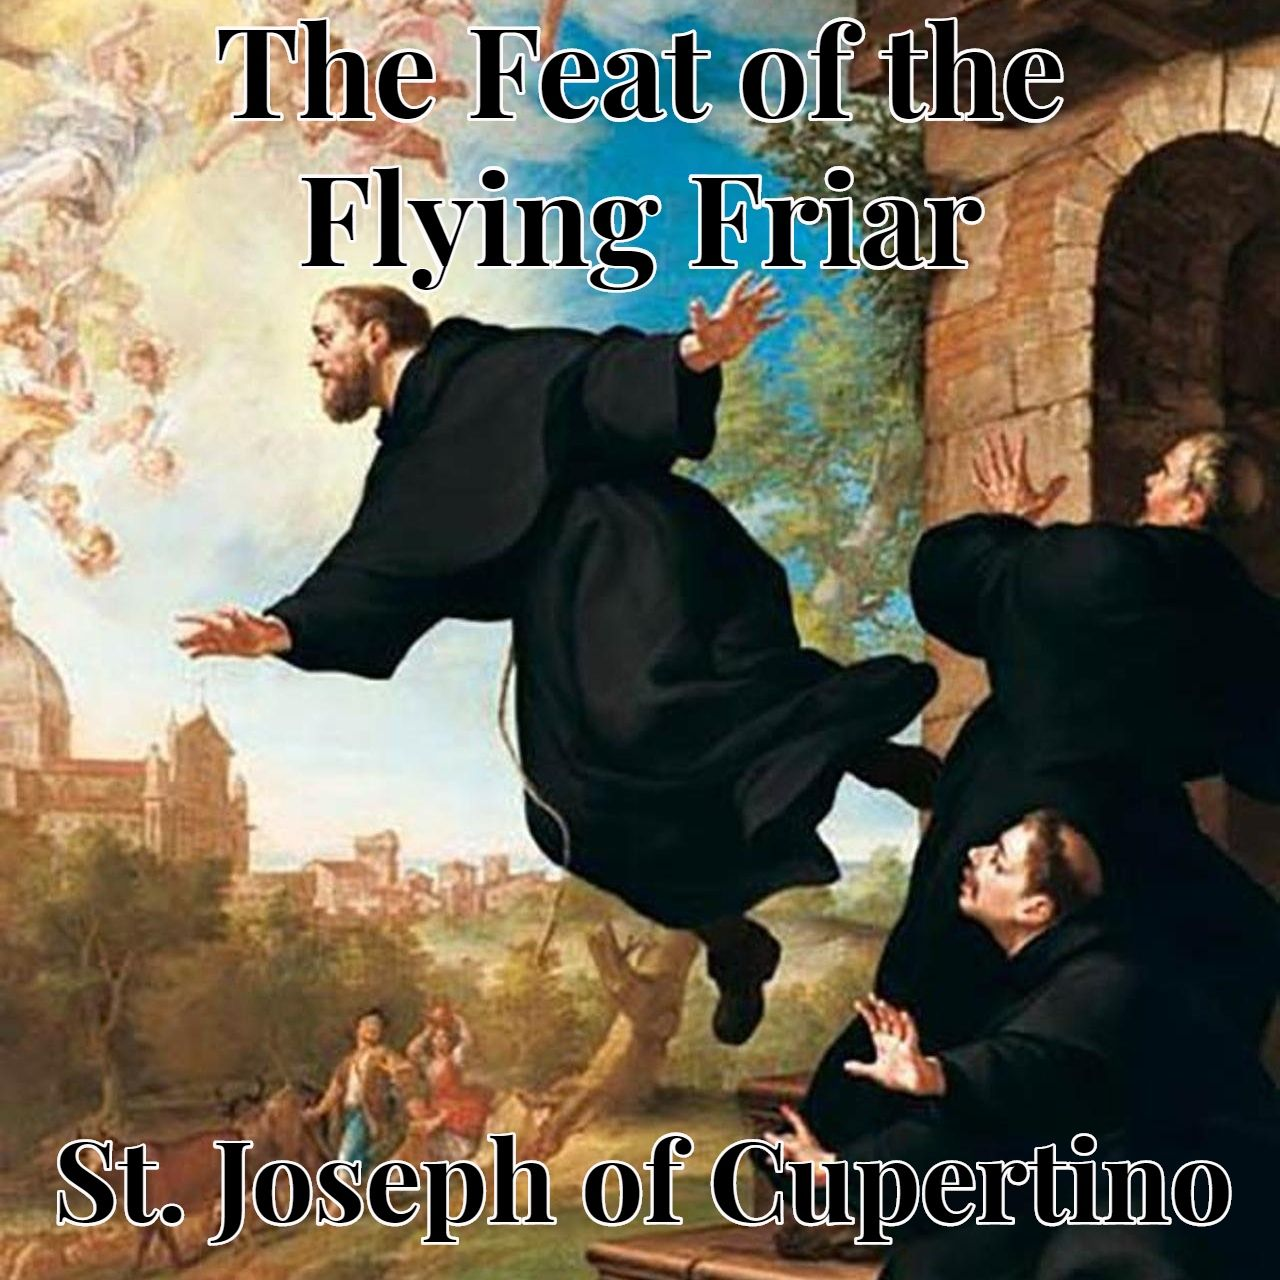 The Feat of the Flying Friar: St. Joseph of Cupertino